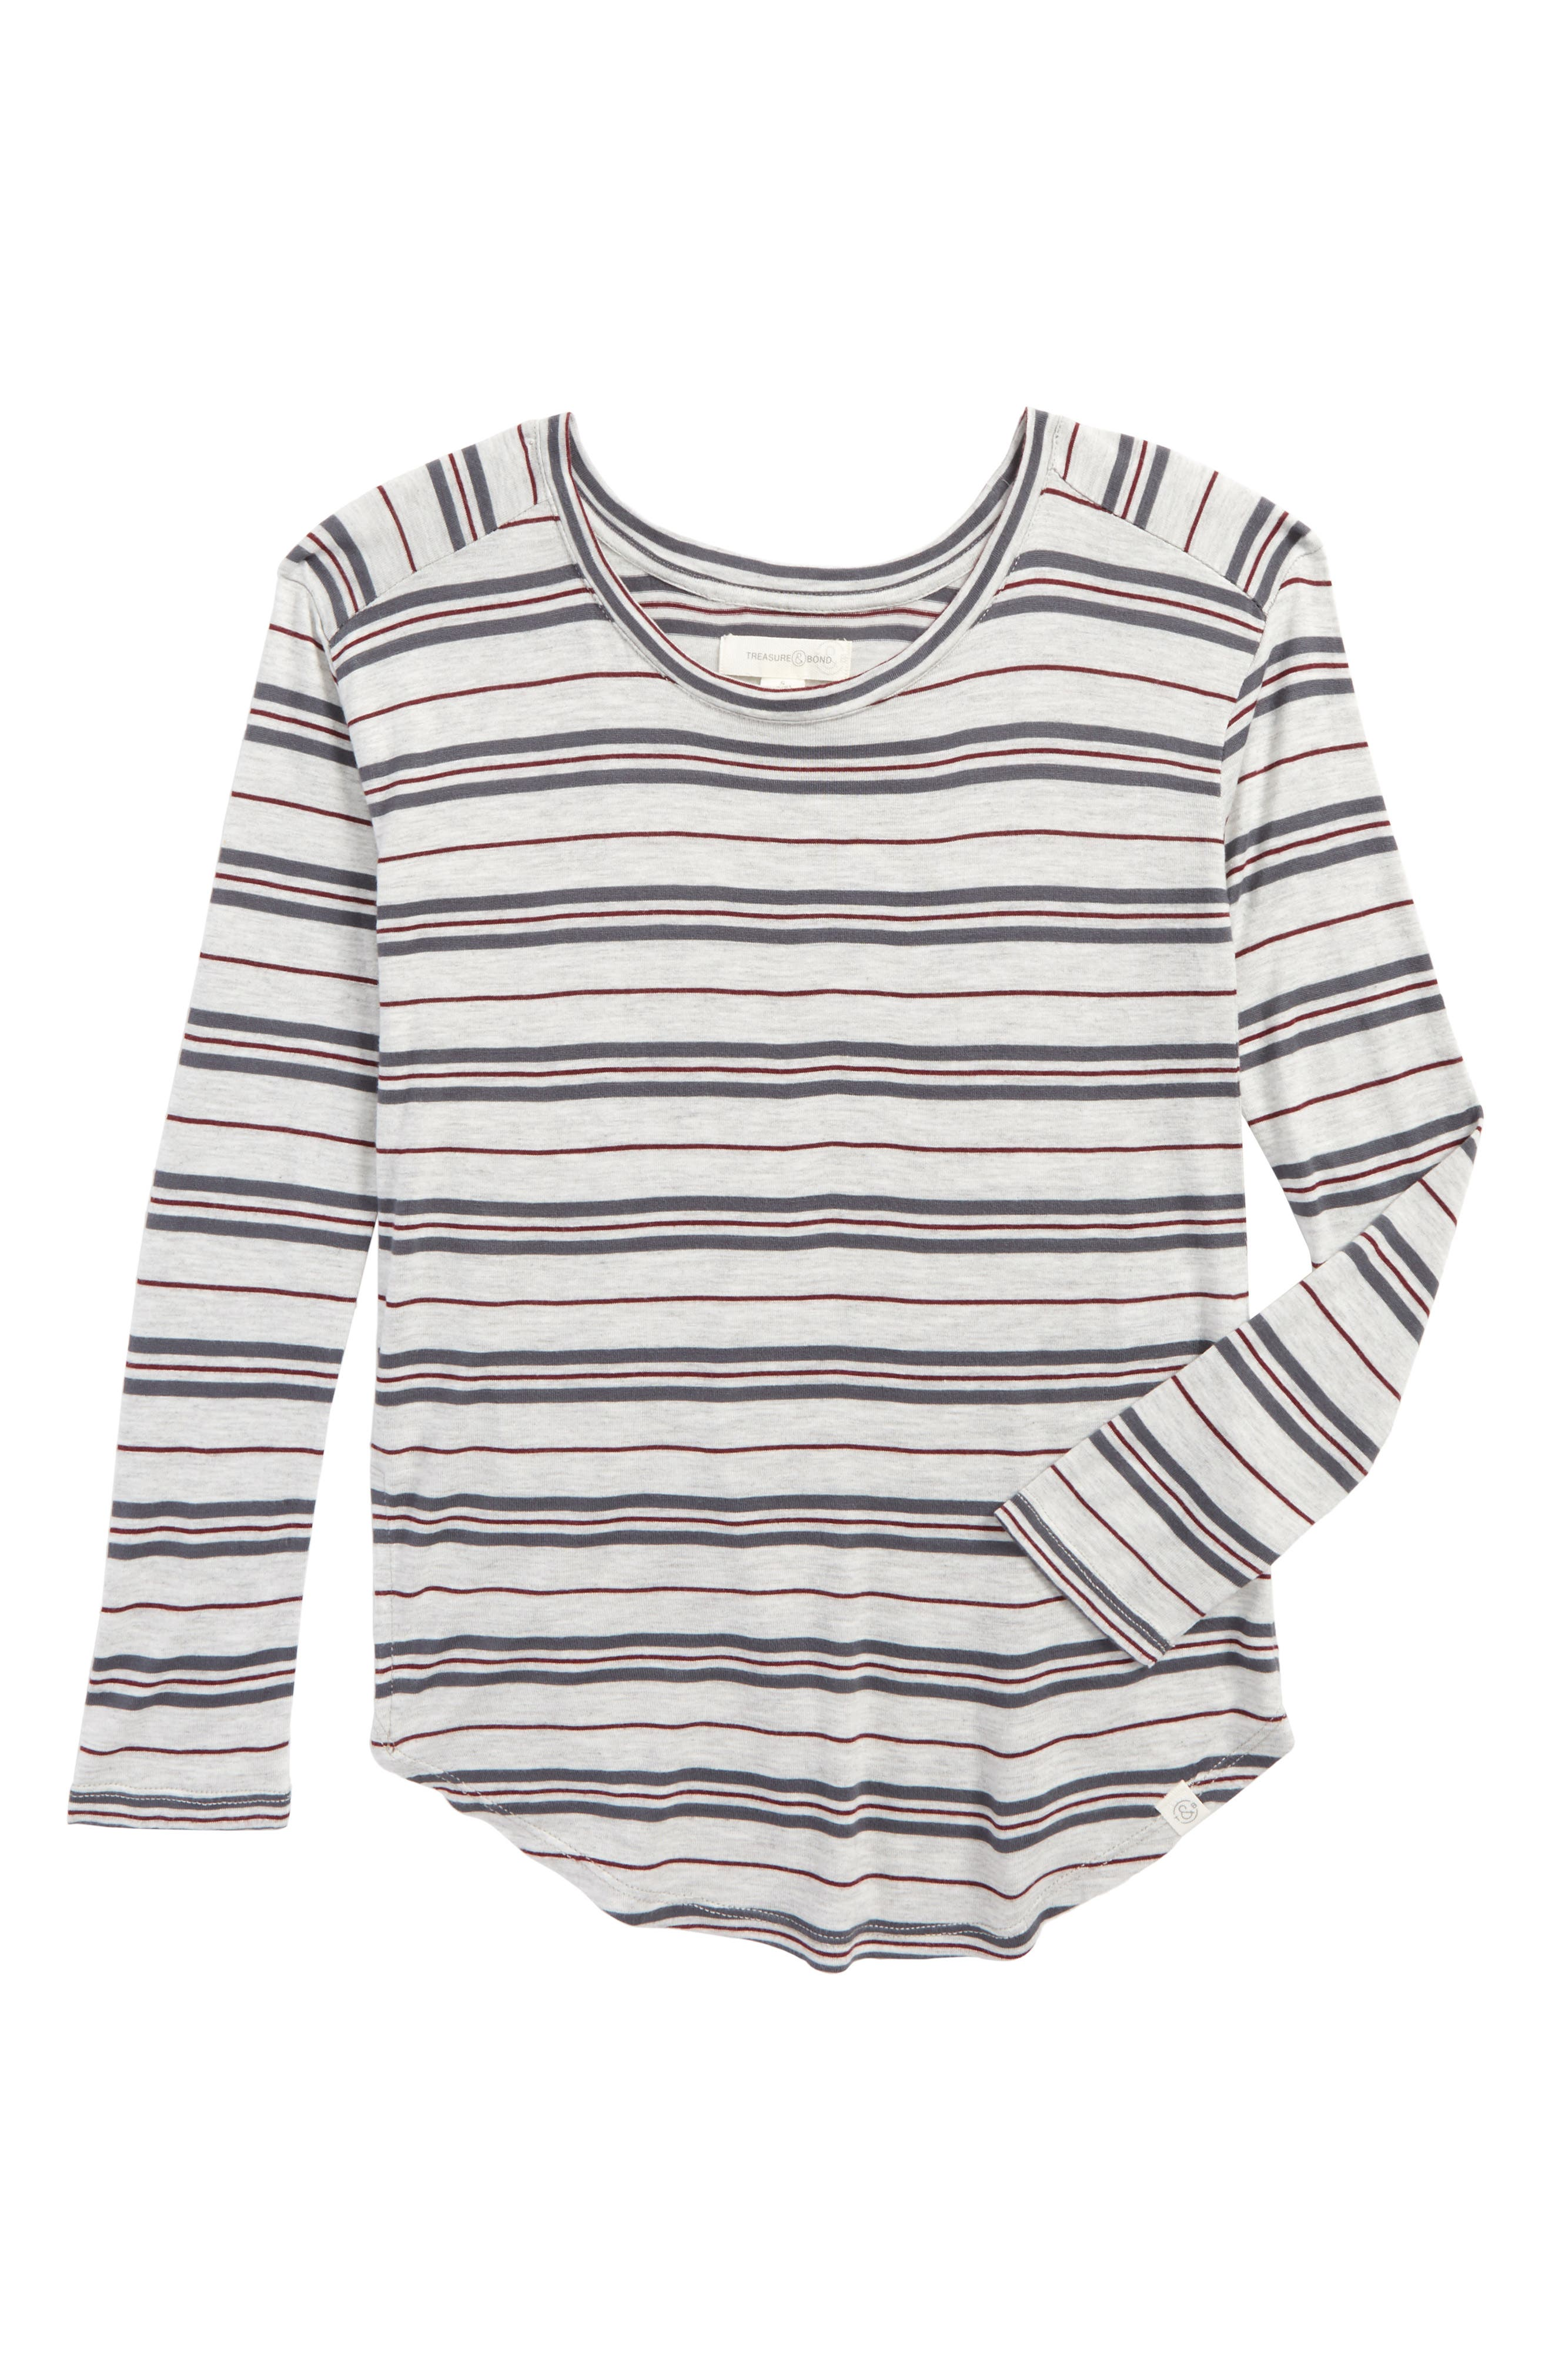 Multi Stripe Tee,                         Main,                         color, 050